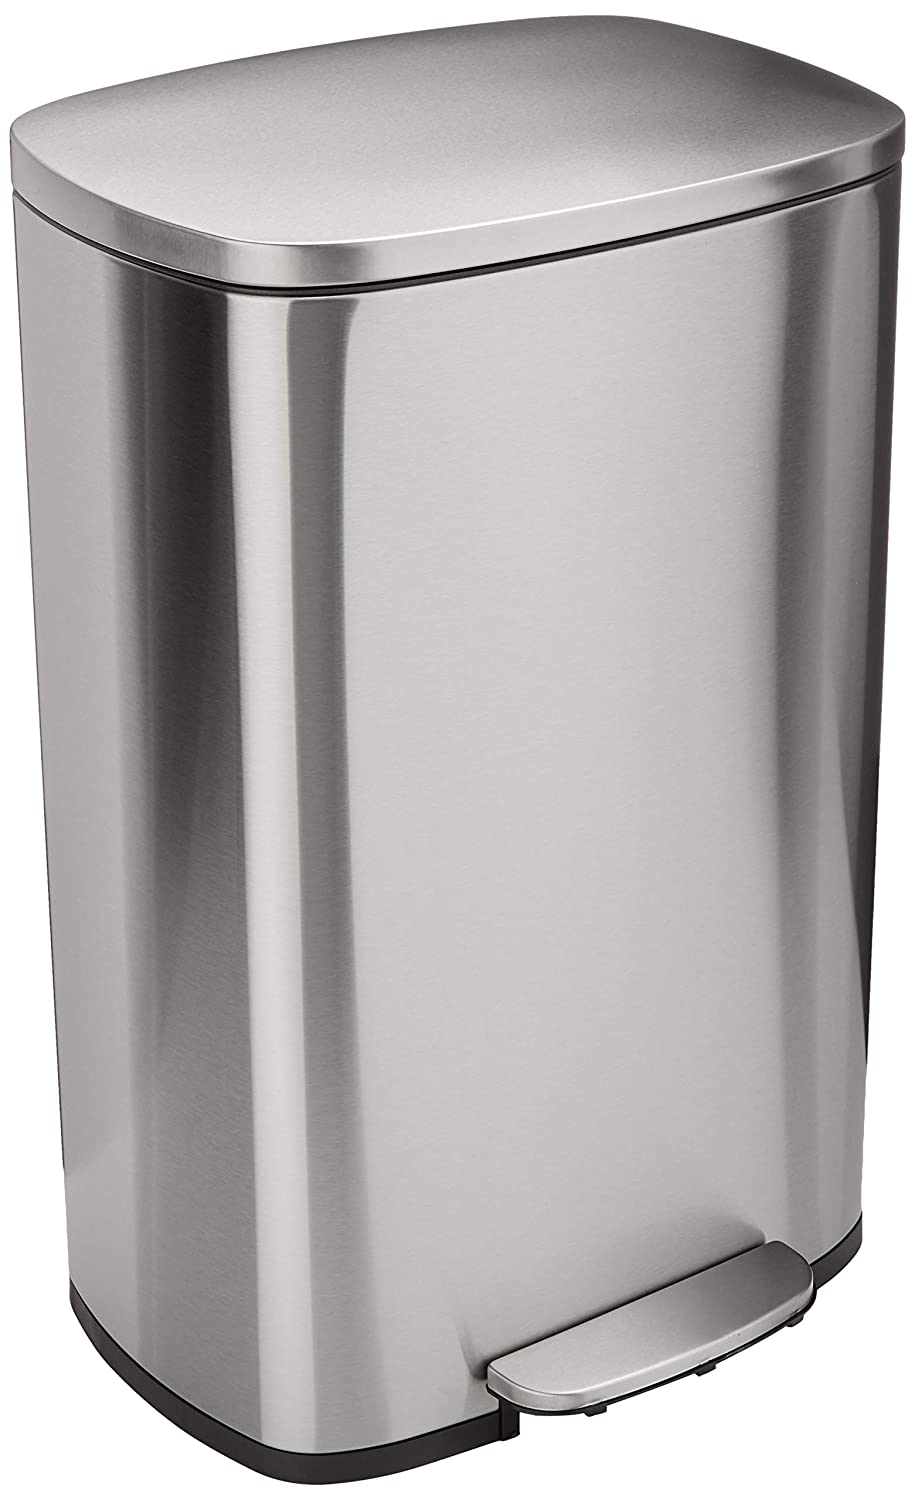 Top 5 Best Cheap Stainless Steel Trash Cans In 2019 Reviews